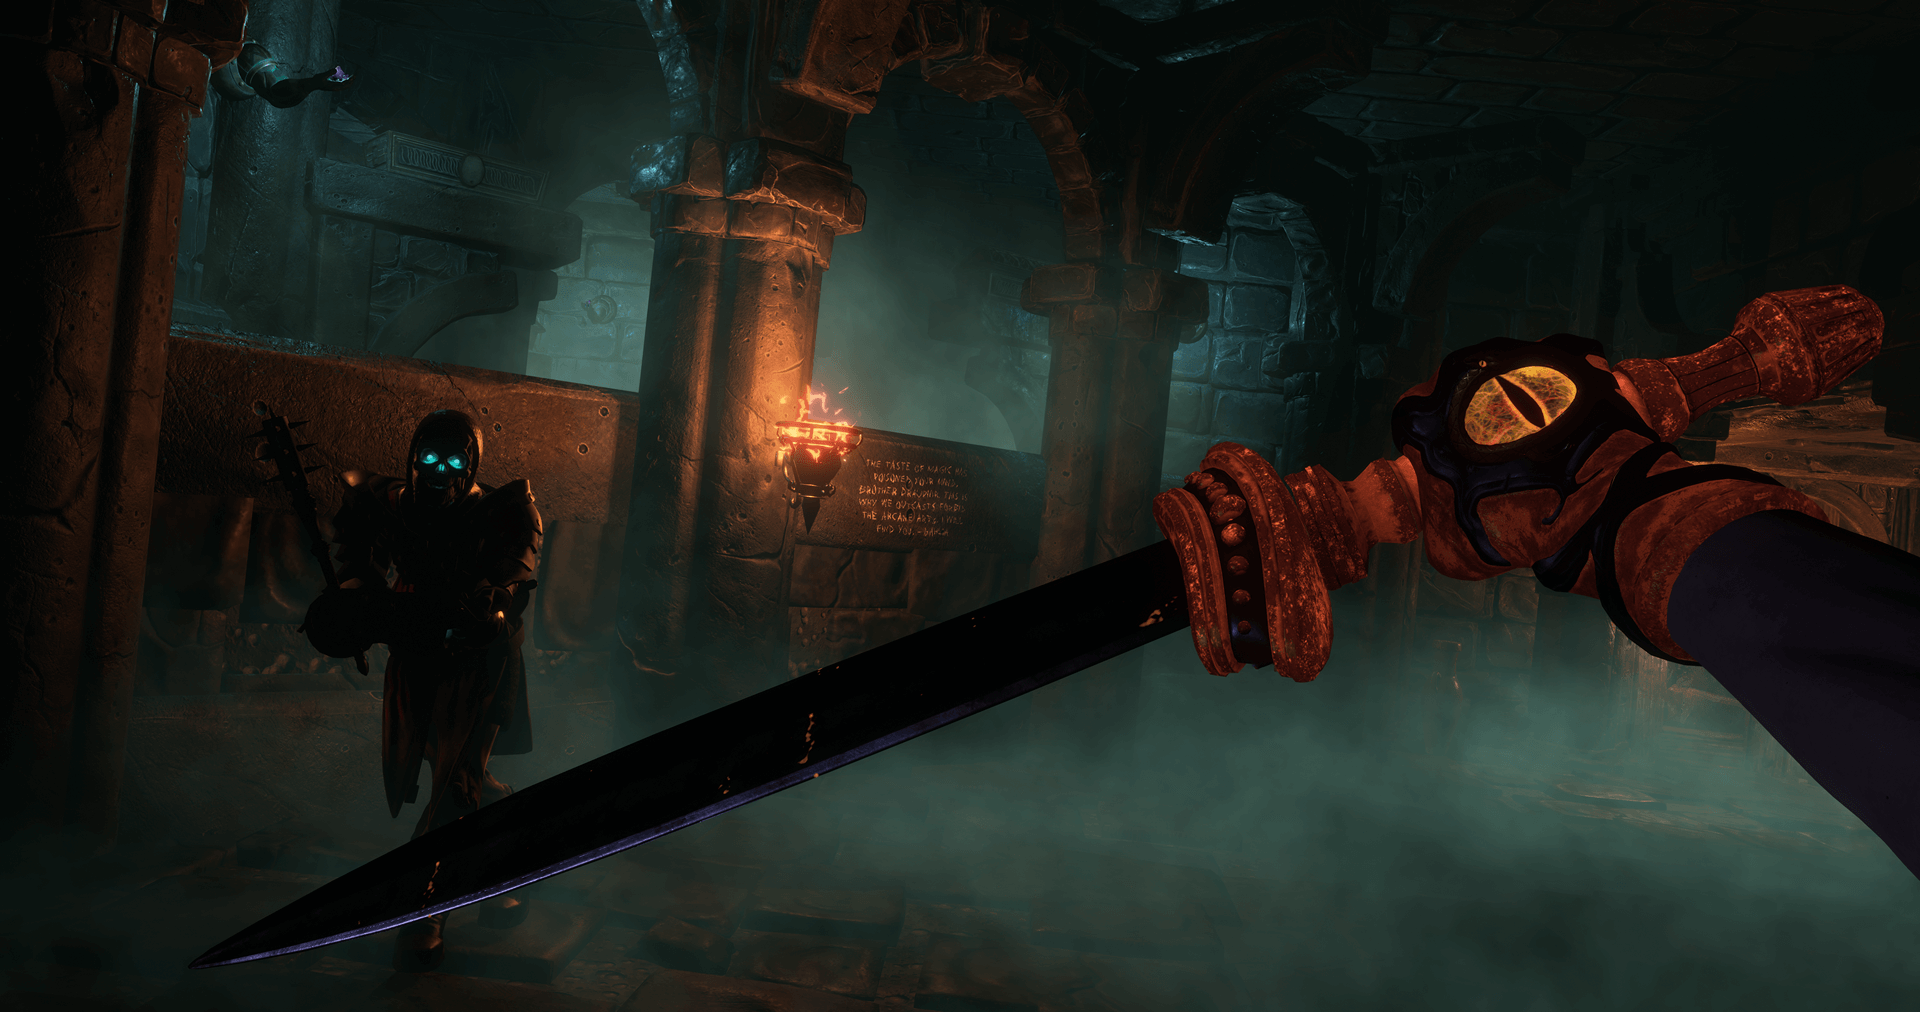 Underworld Ascendant (WW (Promo) #2)